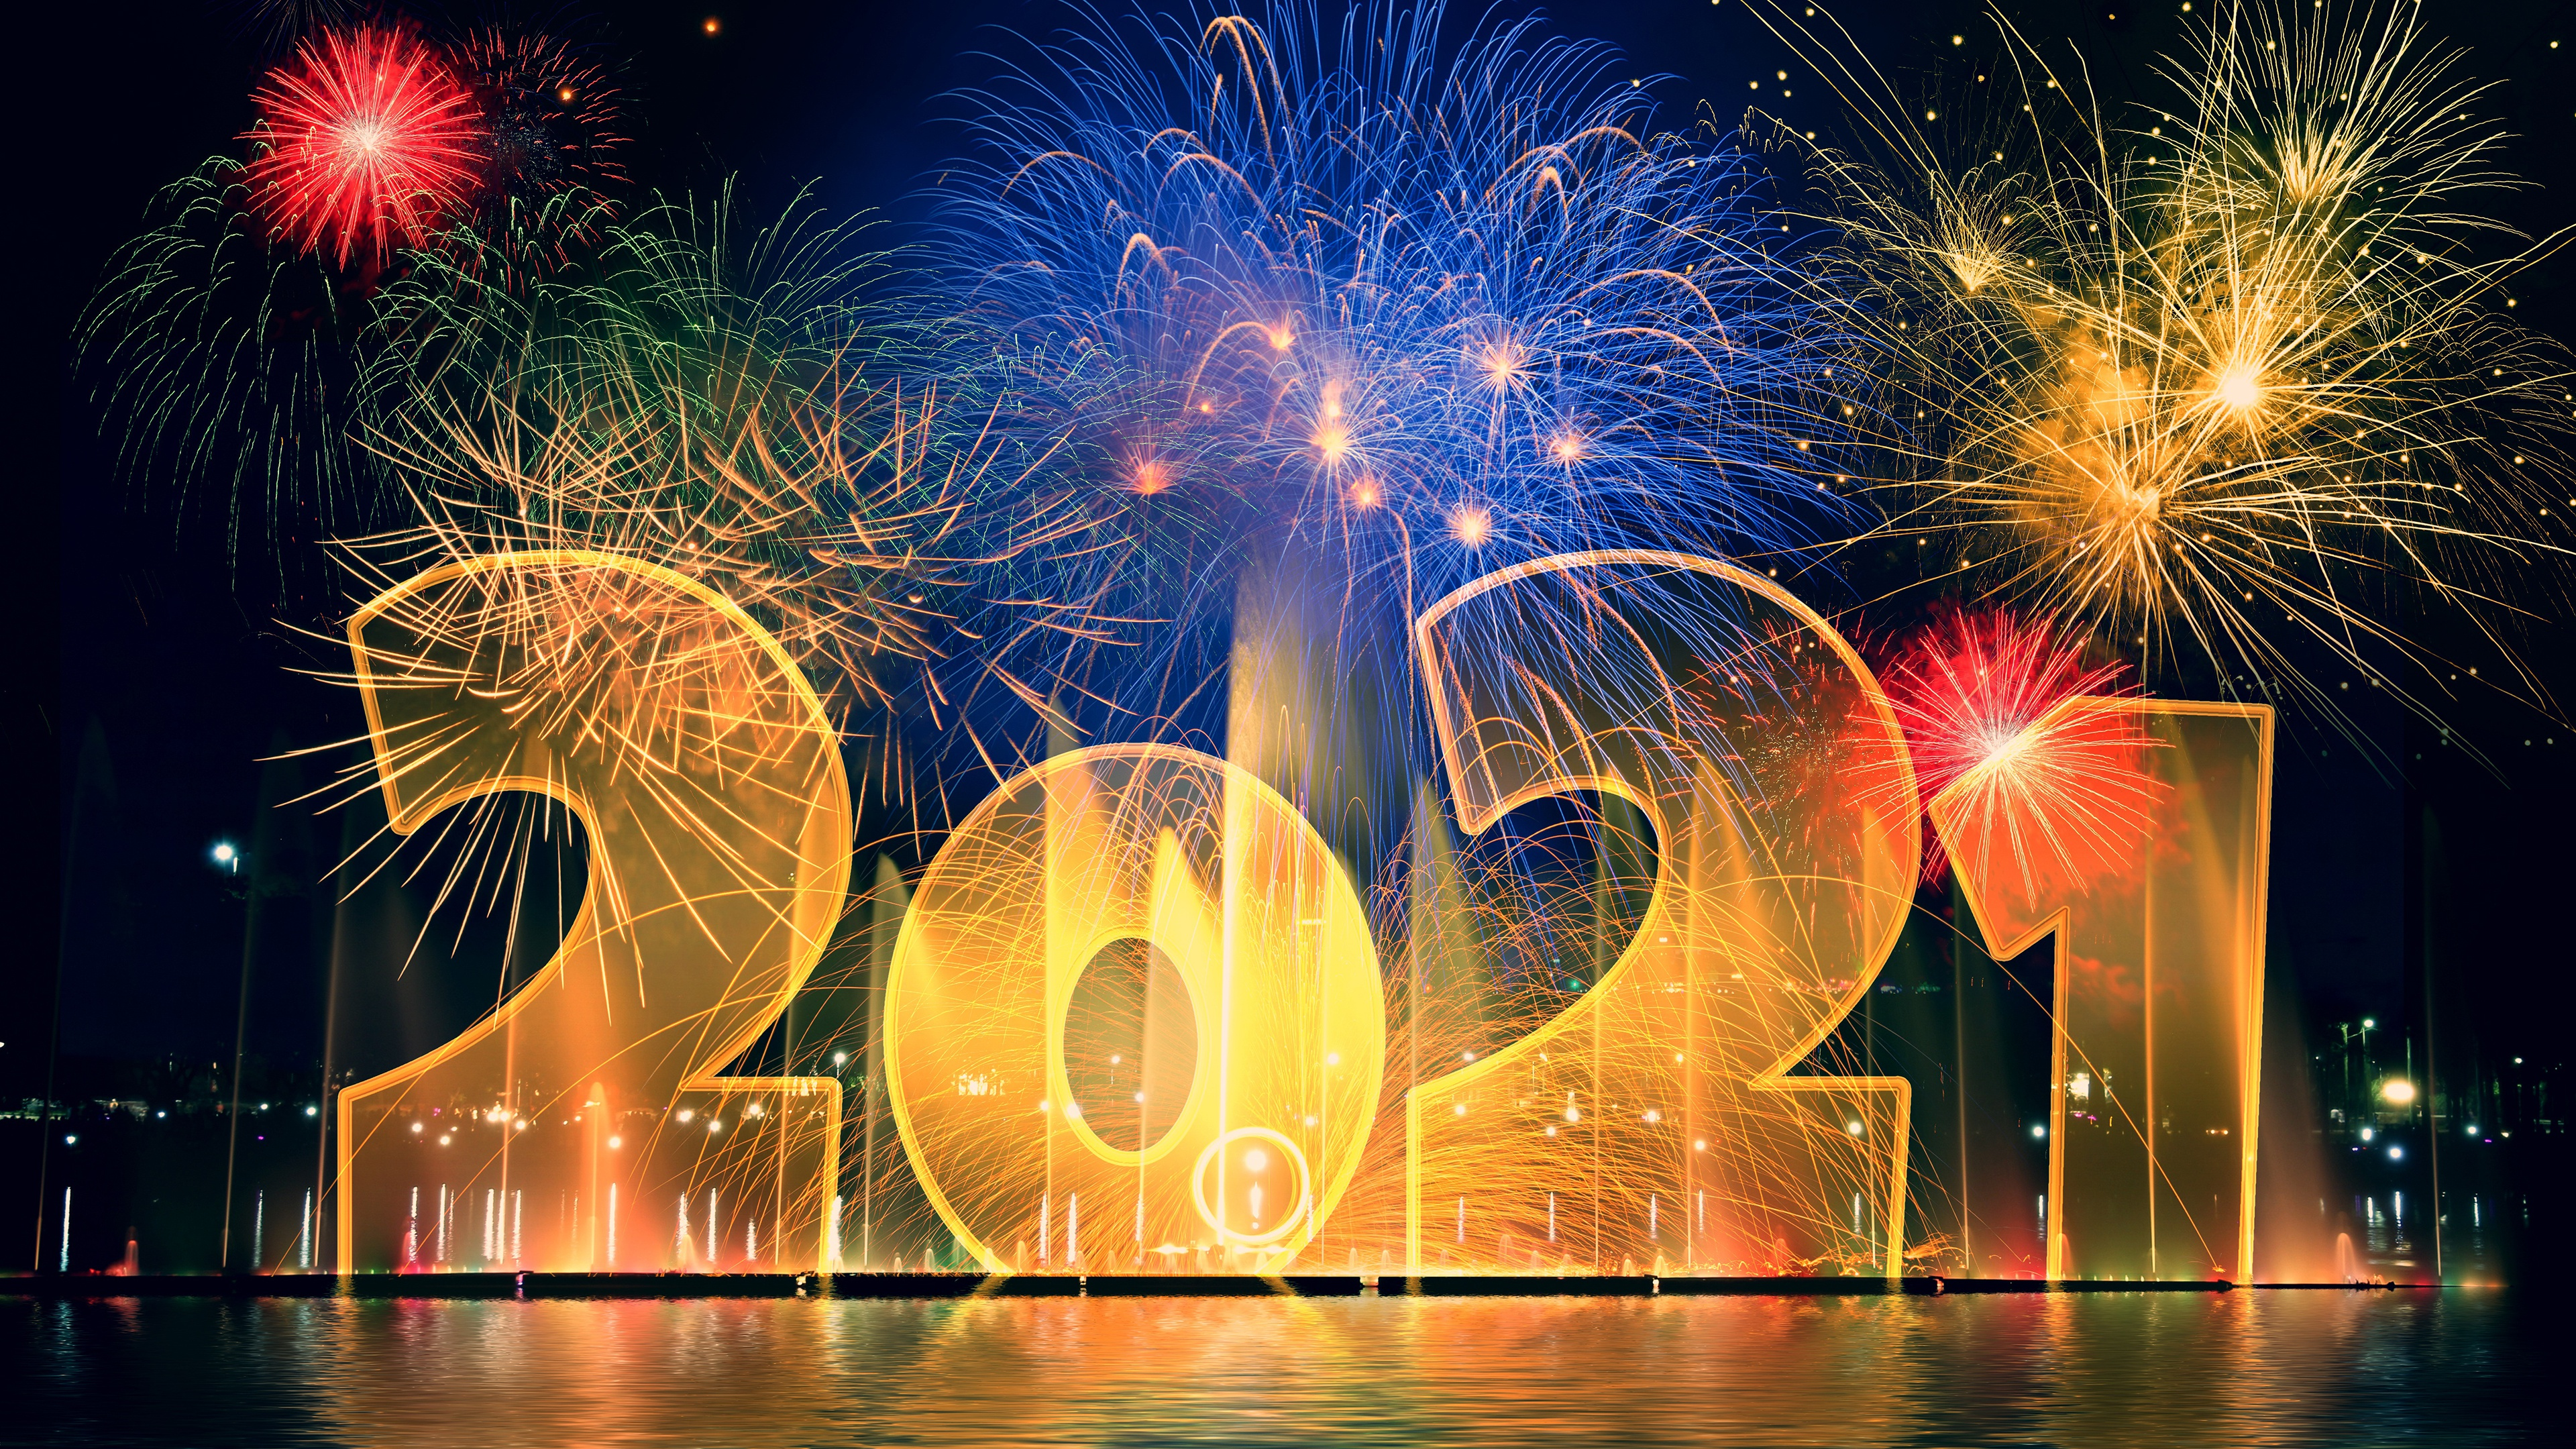 Happy New Year 2021 Background Wallpaper 38402160 32914 HD 3840x2160